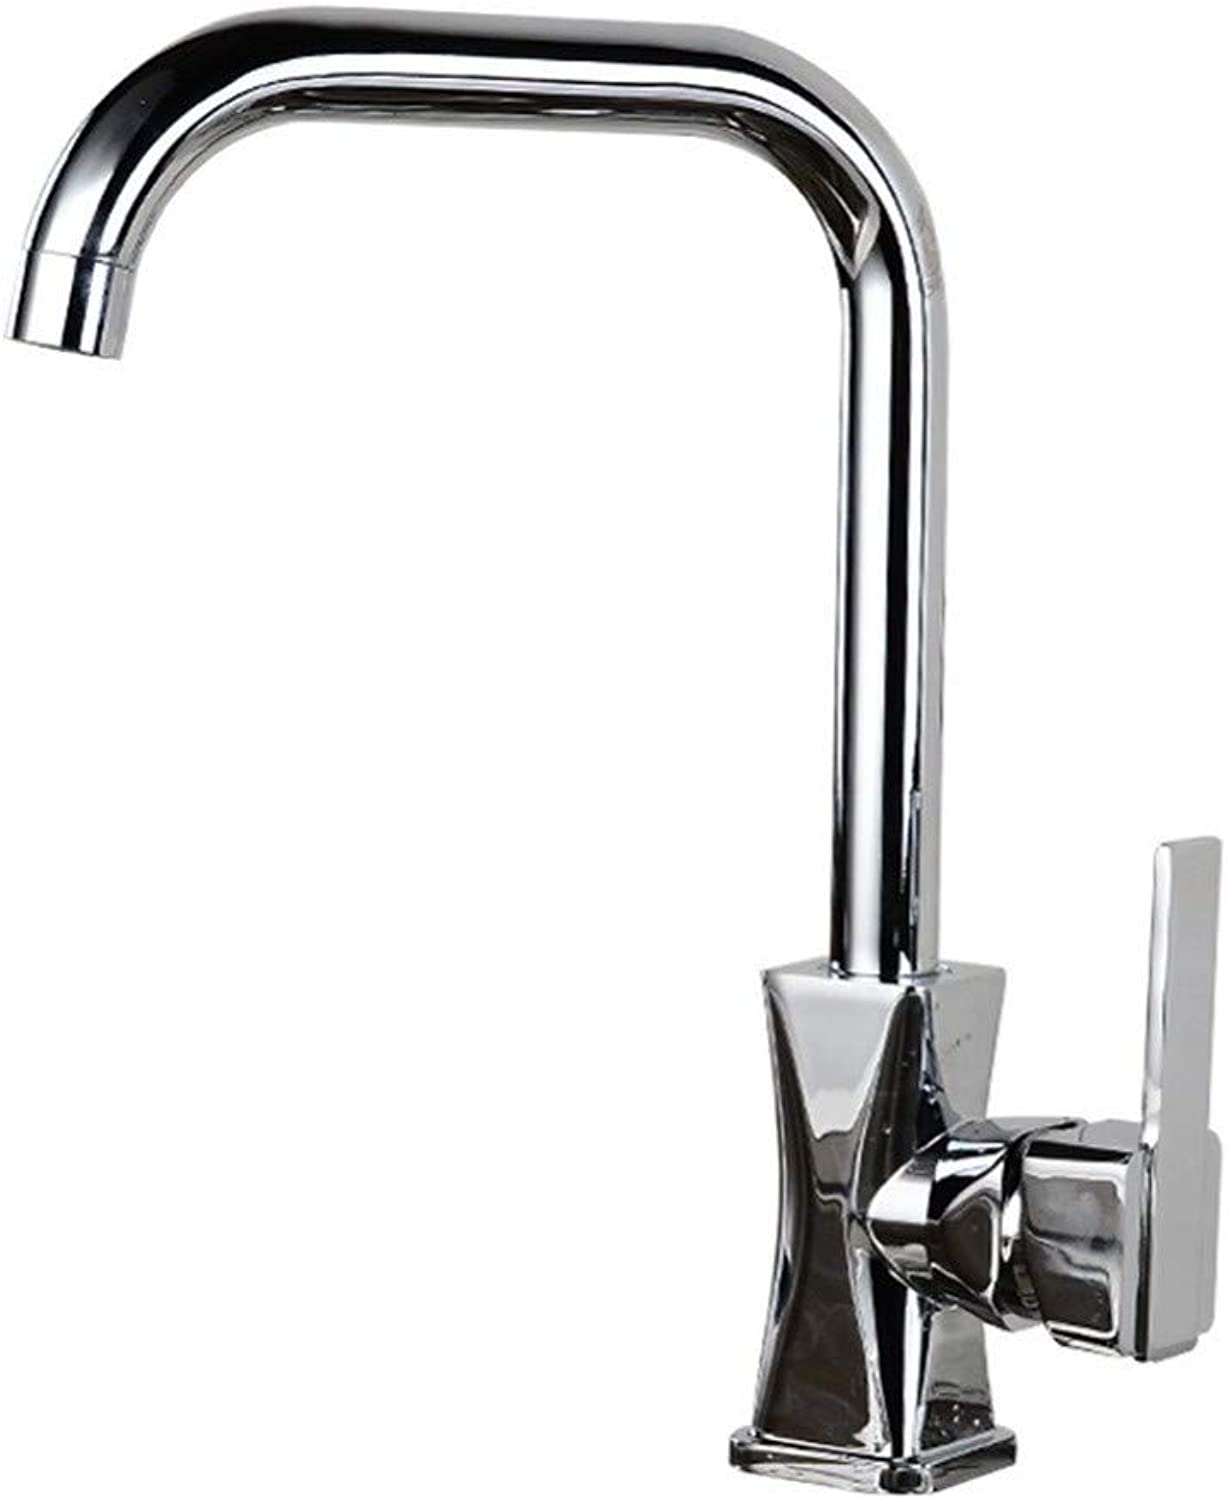 Basin Taps Swivel Spout Faucet Bathroom Kitchen Faucet Sink Faucet Hot and Cold Sink Faucet